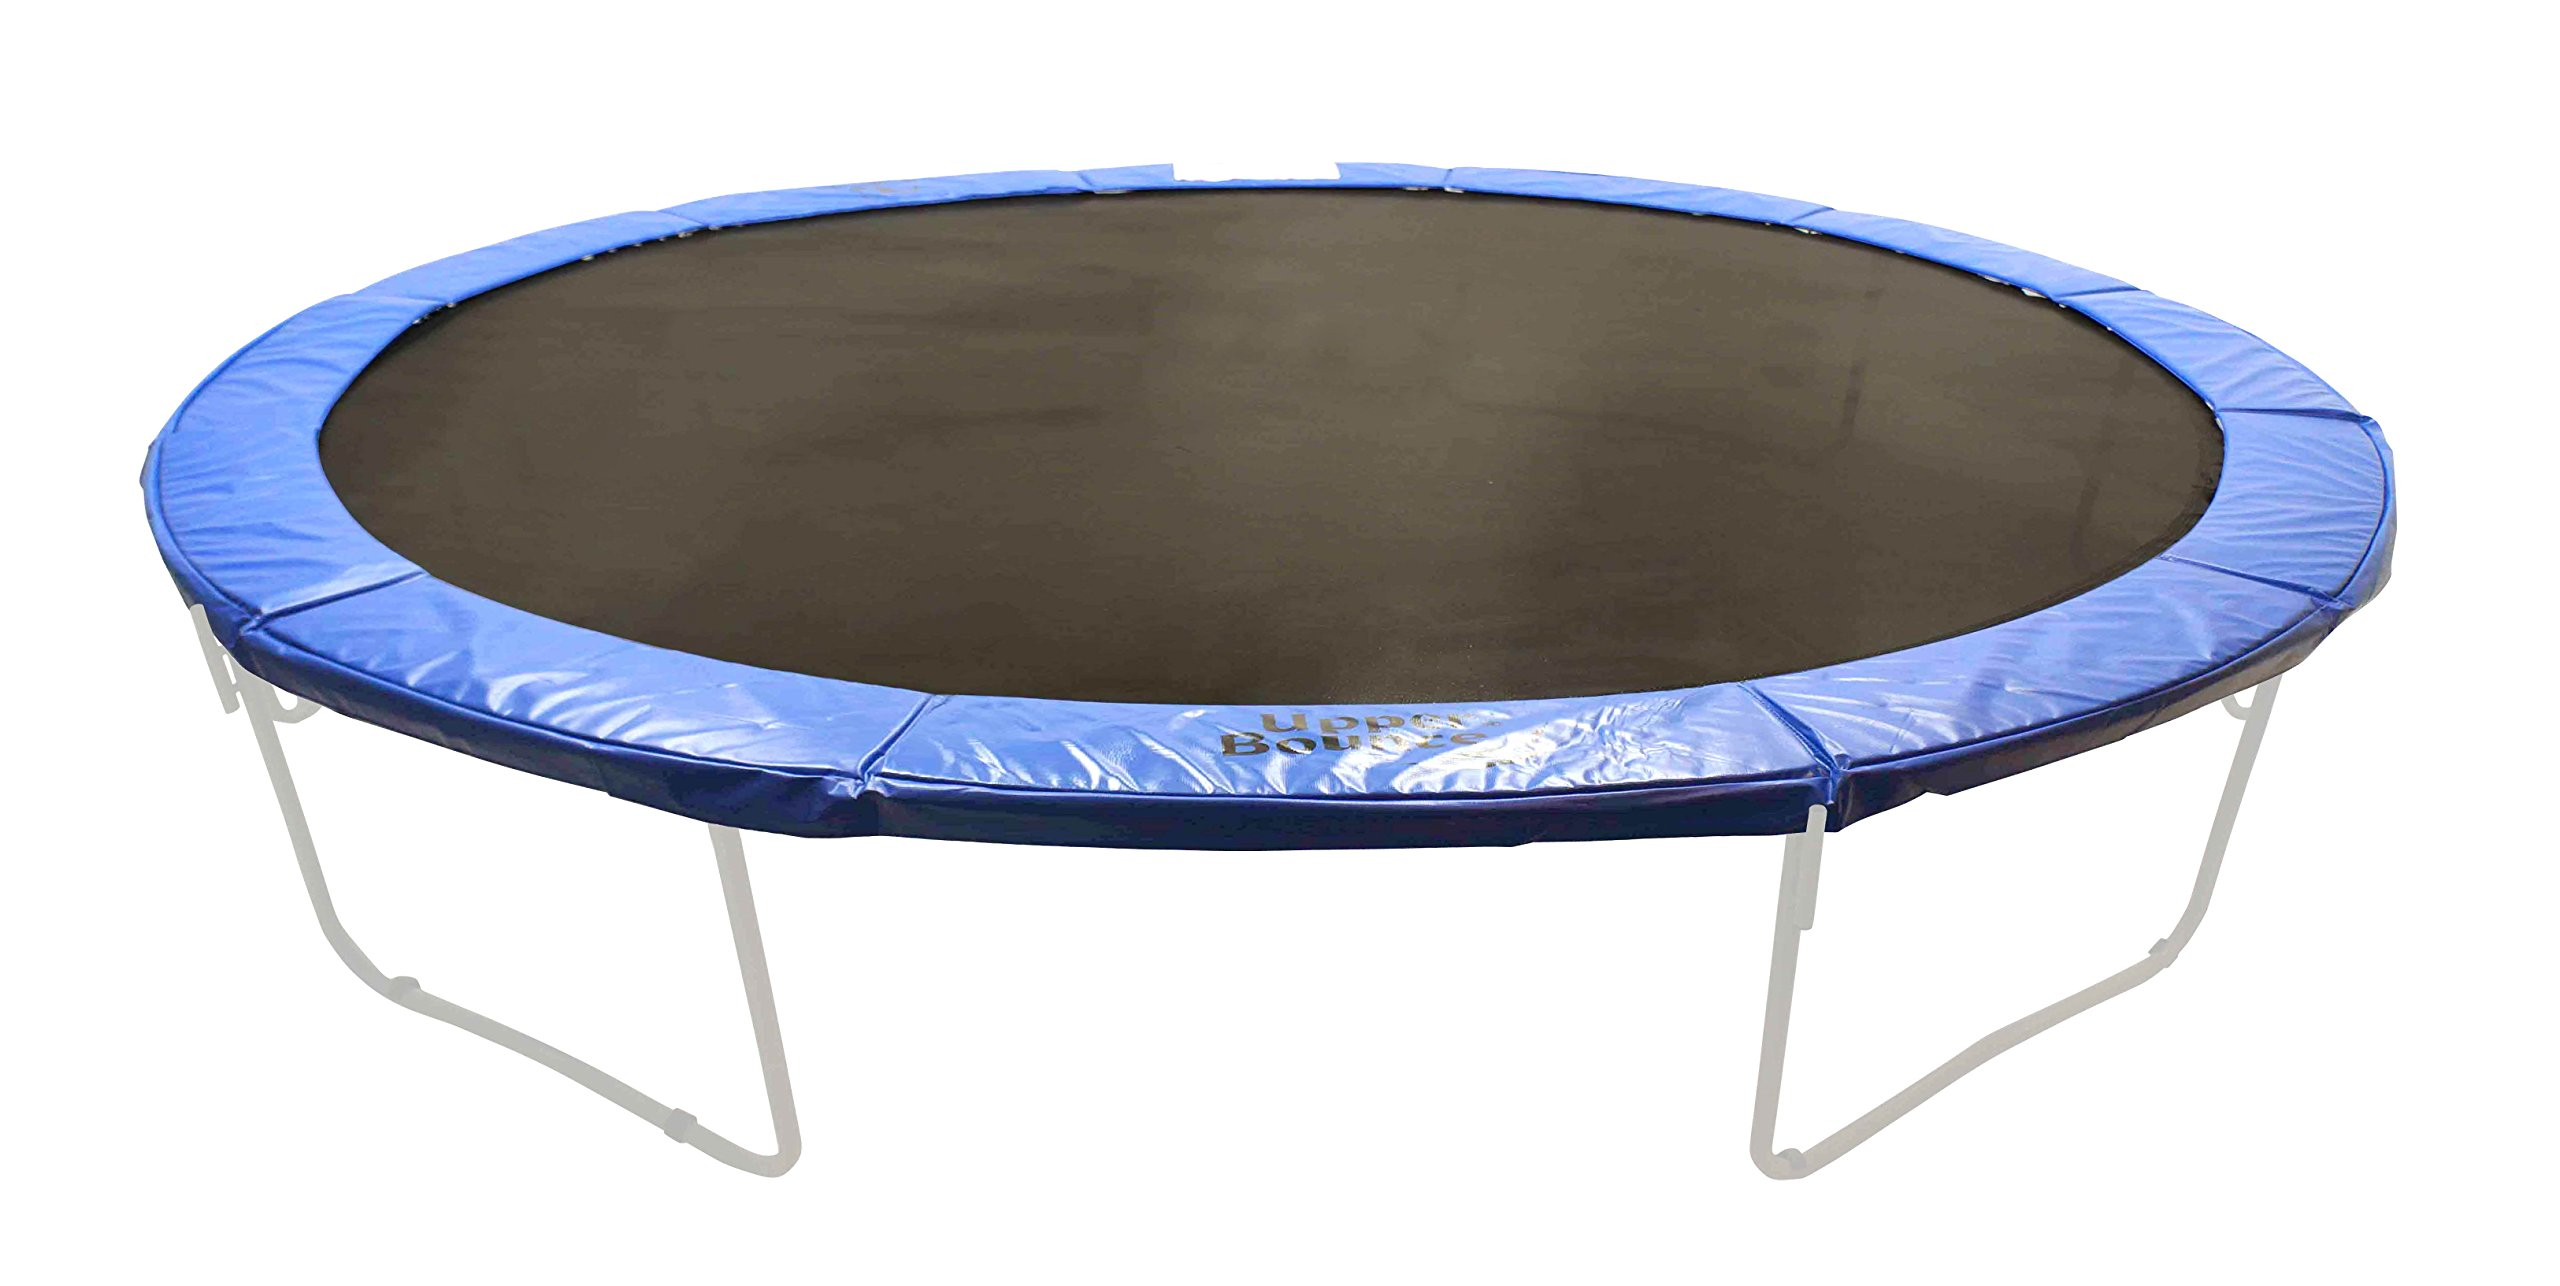 Upper Bounce Super Trampoline Safety Pad Spring Cover Fits for 17 x 15-Feet Oval Trampoline Frames, 10-Inch, Blue by Upper Bounce